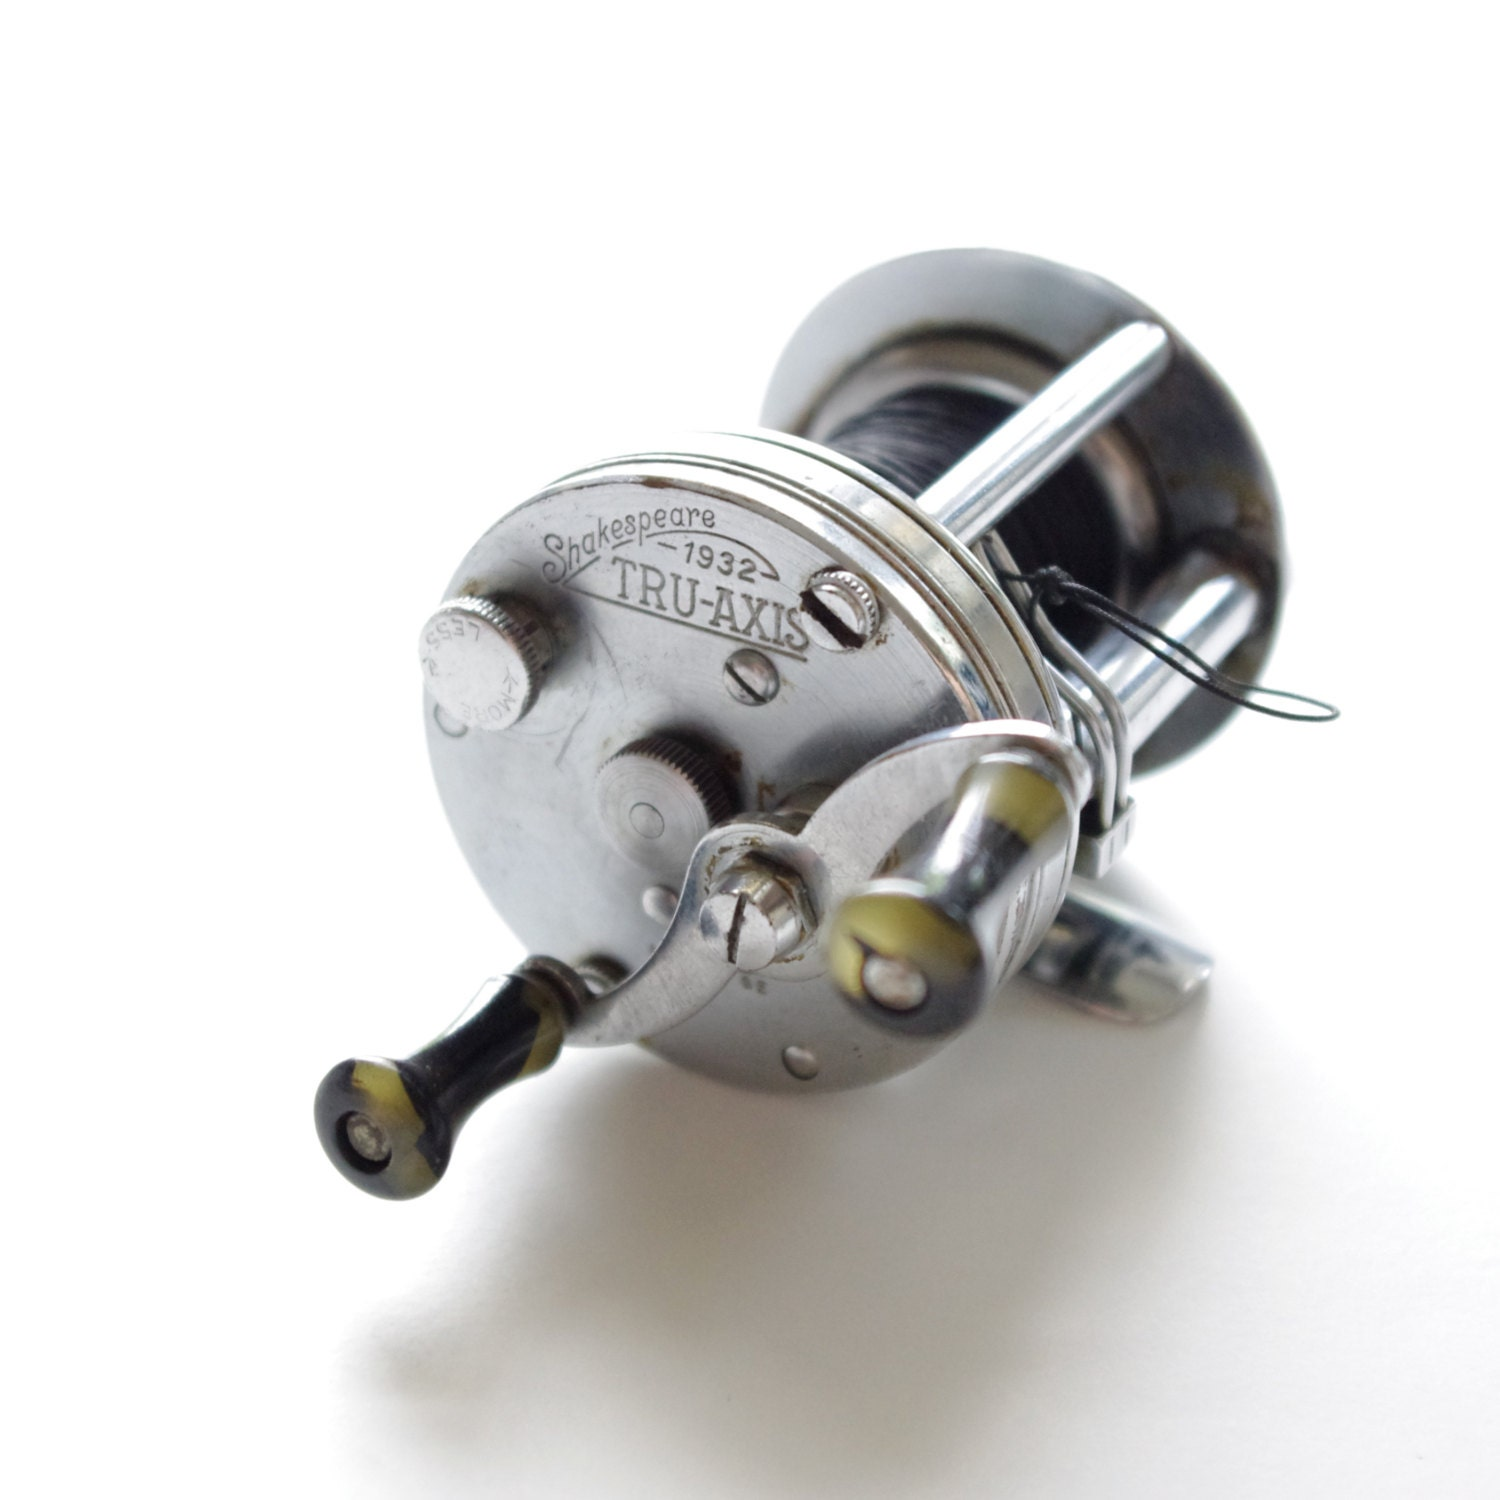 Vintage fishing reel shakespeare 1932 by thischarmingmancave